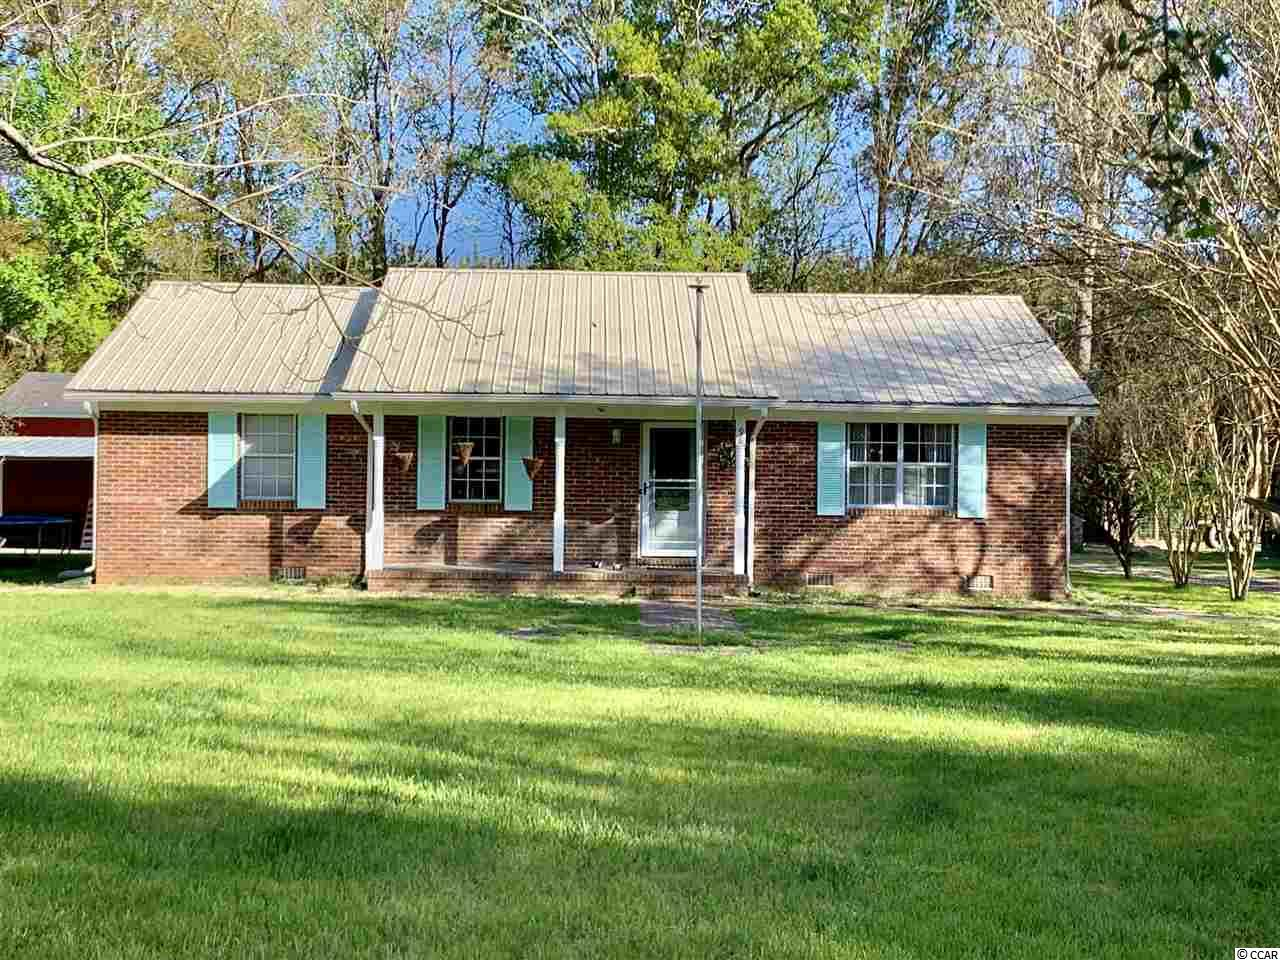 This is a well maintained brick home on a large lot. Owners have done the upgrades so this one is move in ready. On the property you will find a large shed, several chicken coops, a large treehouse, more chicken coops, above ground pool and a garden that is ready to be planted. The main part of the shed is climate controlled. Also, attached to the shed is several stalls for equipment or toys. This family use to raise chickens so the whole yard is fenced in. Some of the upgrades that have been done are: concrete counter tops in the kitchen, stainless steel appliances, Luxury vinyl plank flooring, encapsulation with dehumidifier in the crawlspace and a metal roof. This one won't last long!!